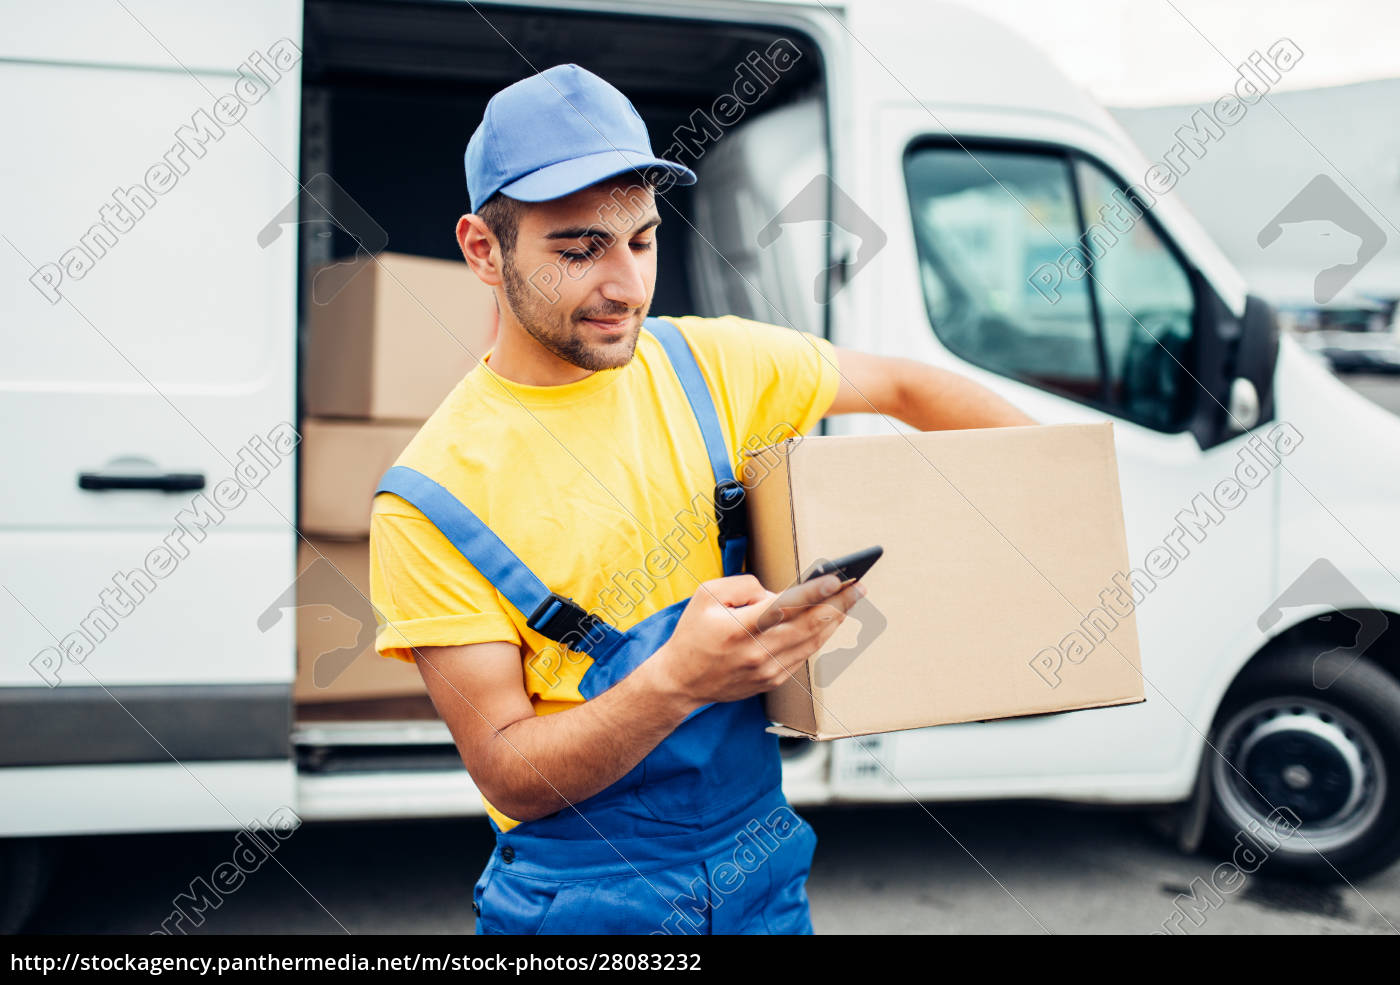 cargo, distribution, industry, , delivery, service - 28083232